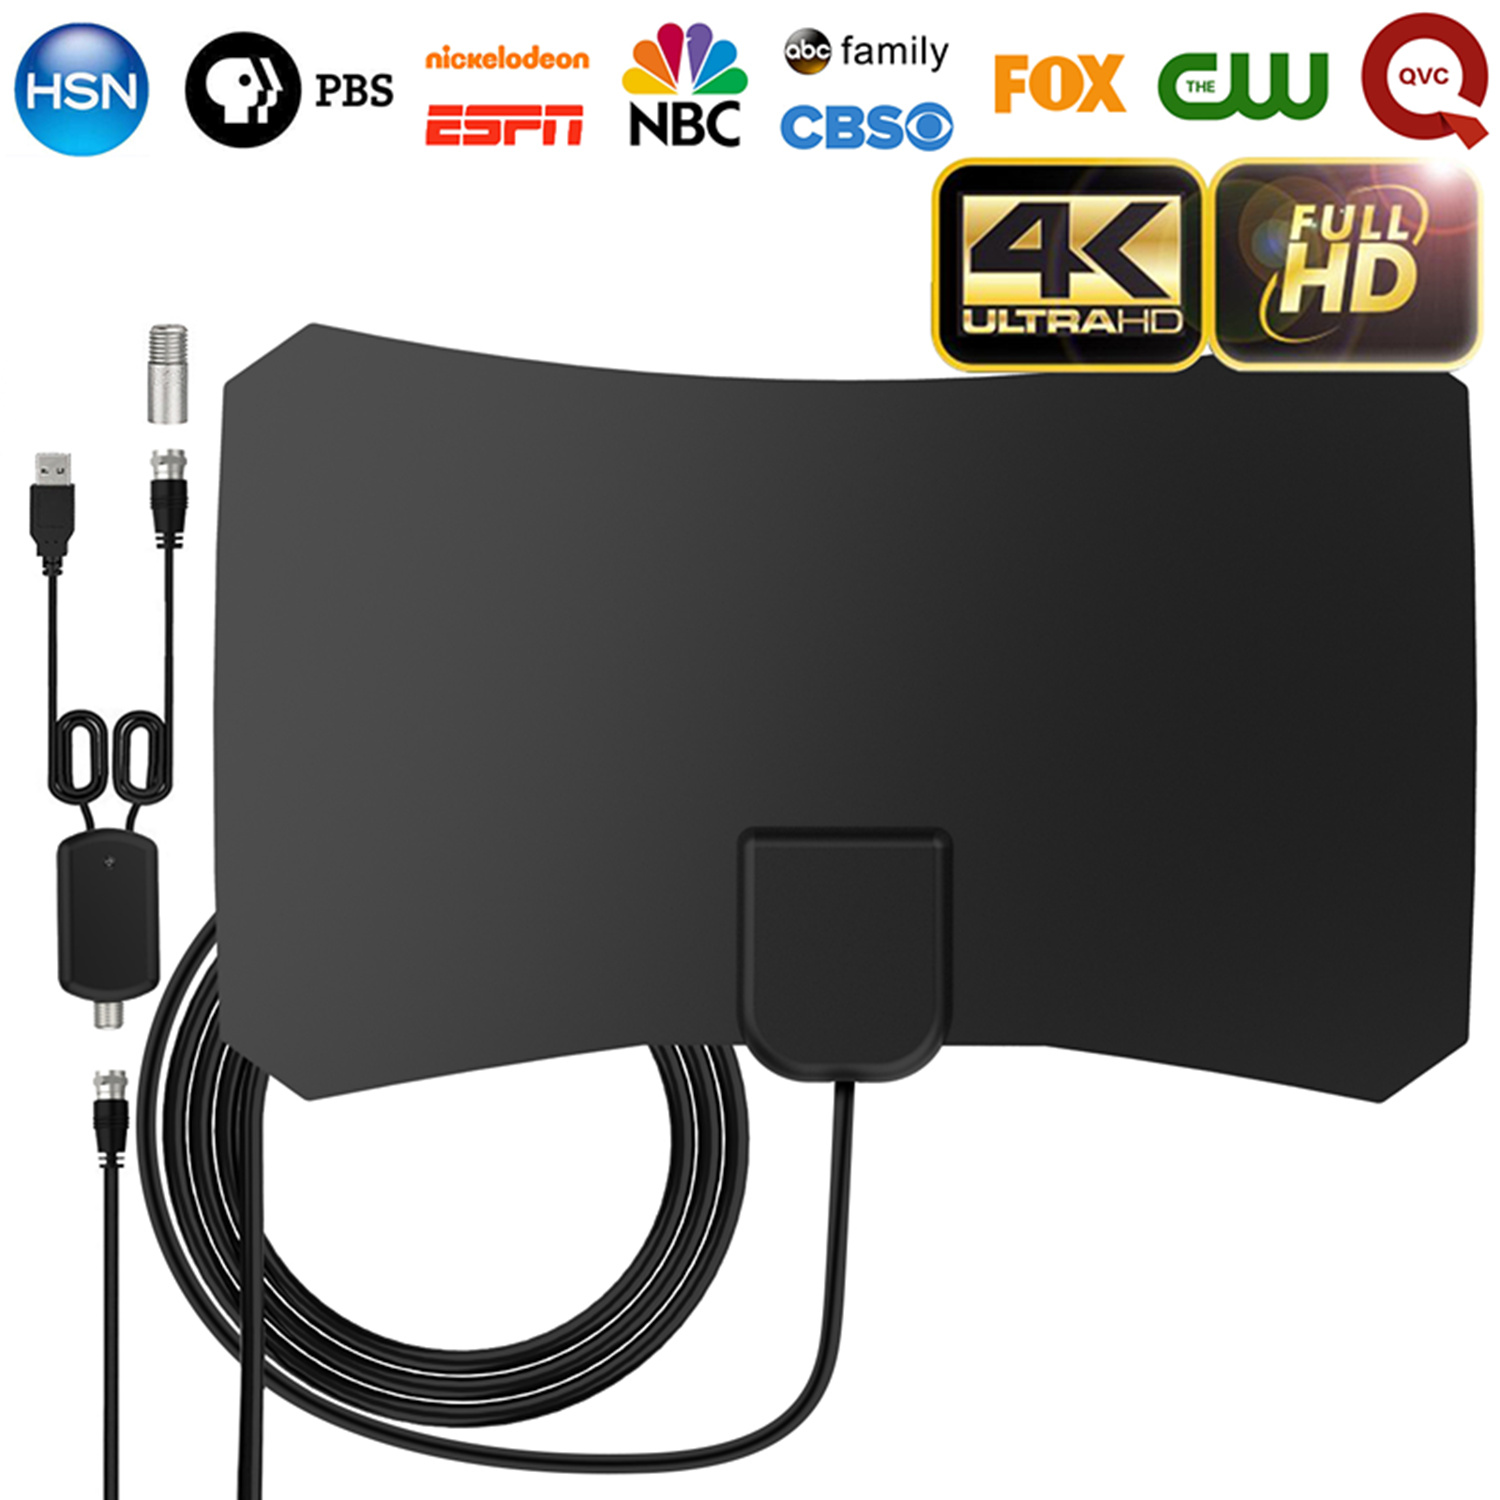 UPGRADED 2018 VERSION HD Digital TV Antenna Kit, 60-80 Miles Long Range High-Definition with HDTV Amplifier Signal Booster for Indoor - Amplified 10ft Coax Cable - Support All TV's - 1080p 4k Ready